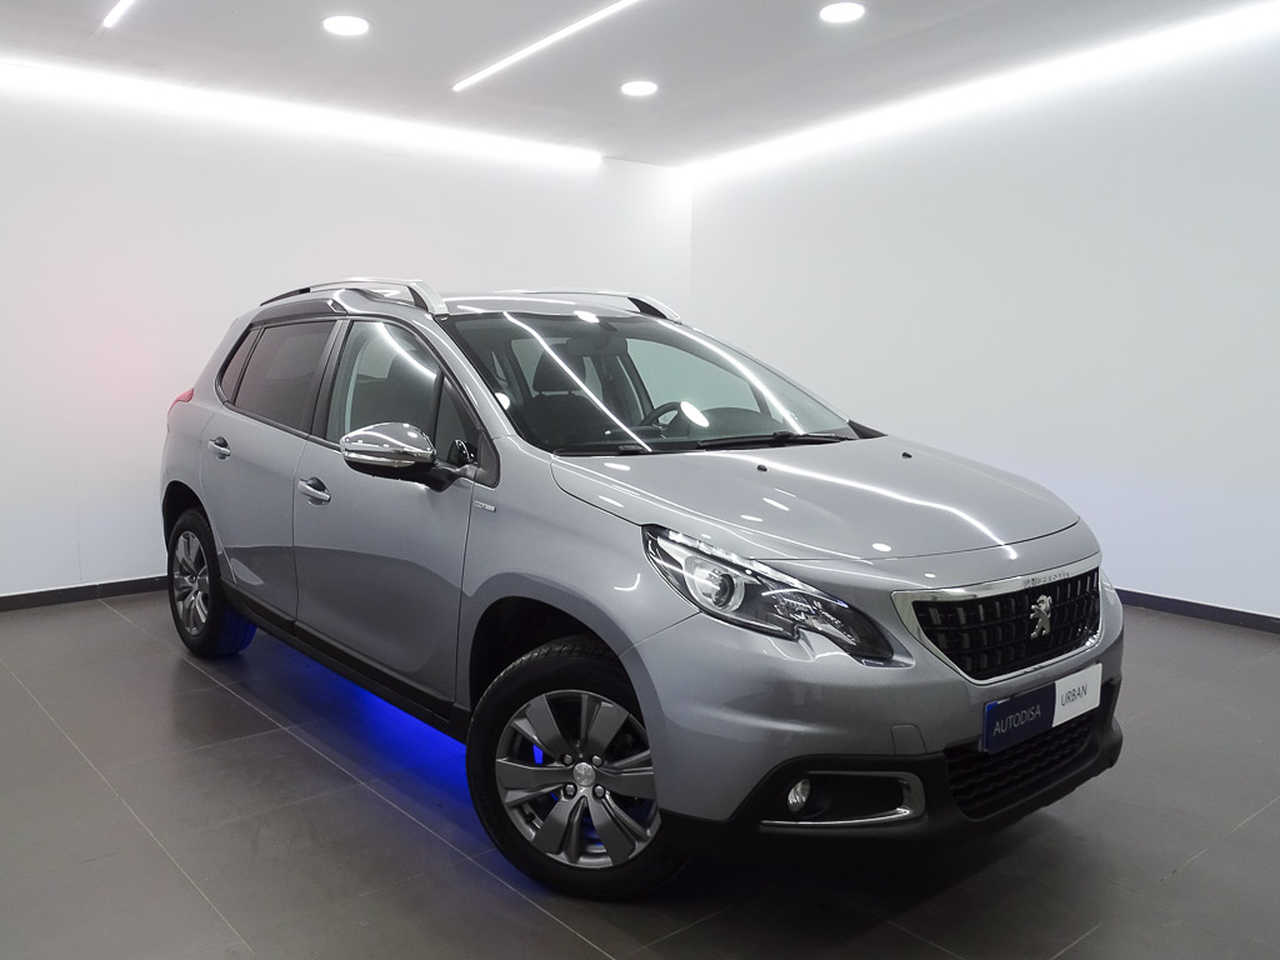 Peugeot 2008 1.2 PureTech Style 82 STYLE